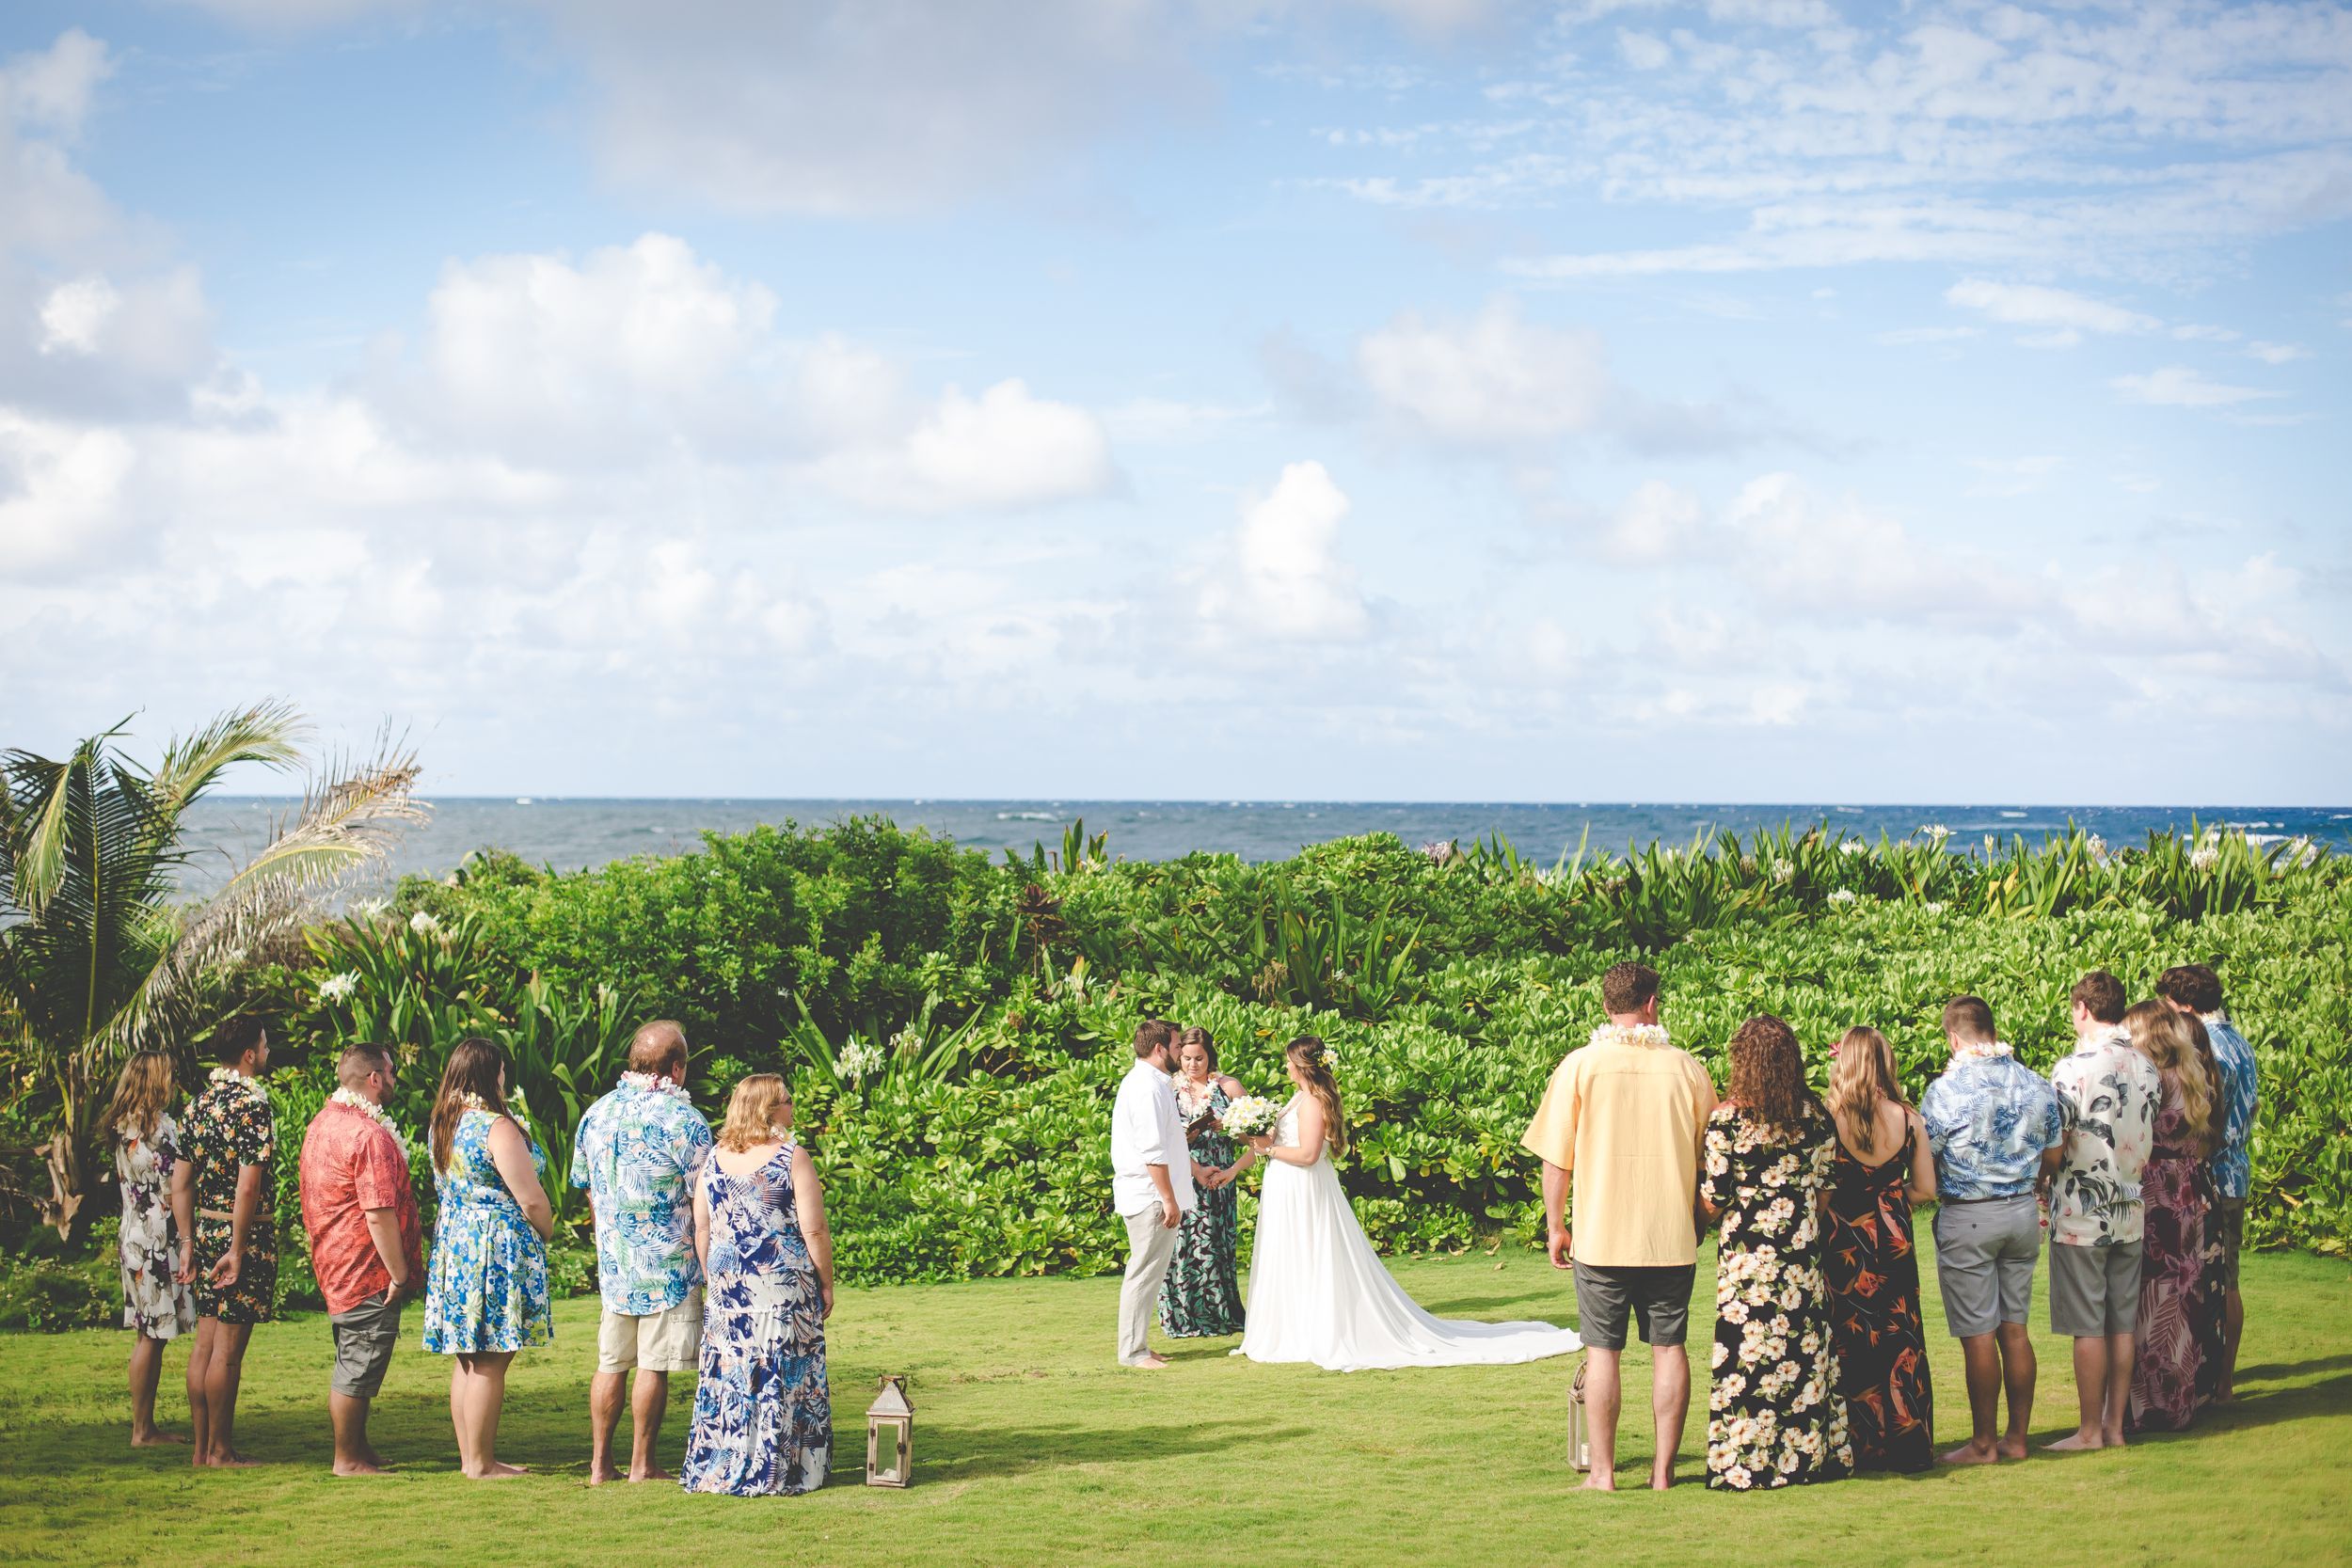 Wide photo of bride and groom holding hands during wedding ceremony. Green grass and plants around them, ocean behind.